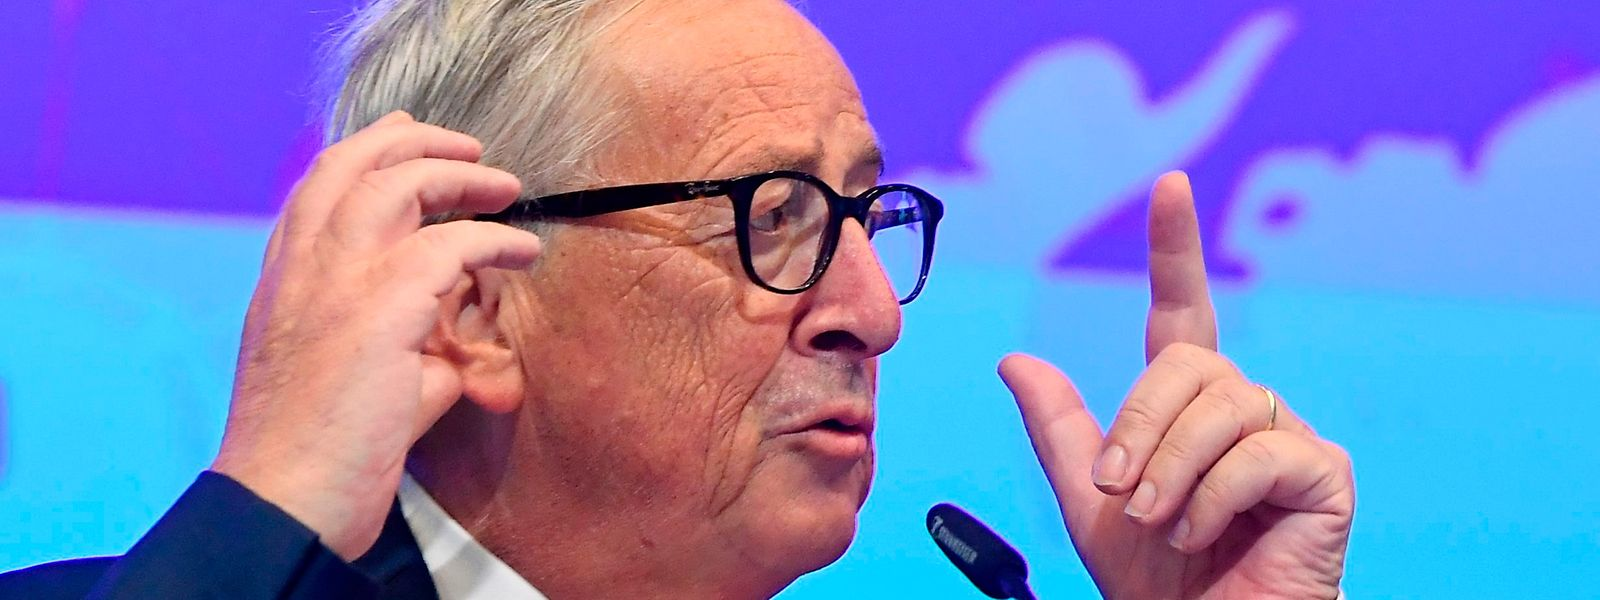 Jean-Claude Juncker ne ferme pas la porte aux propositions de Boris Johnson mais certaines conditions restent de mise.